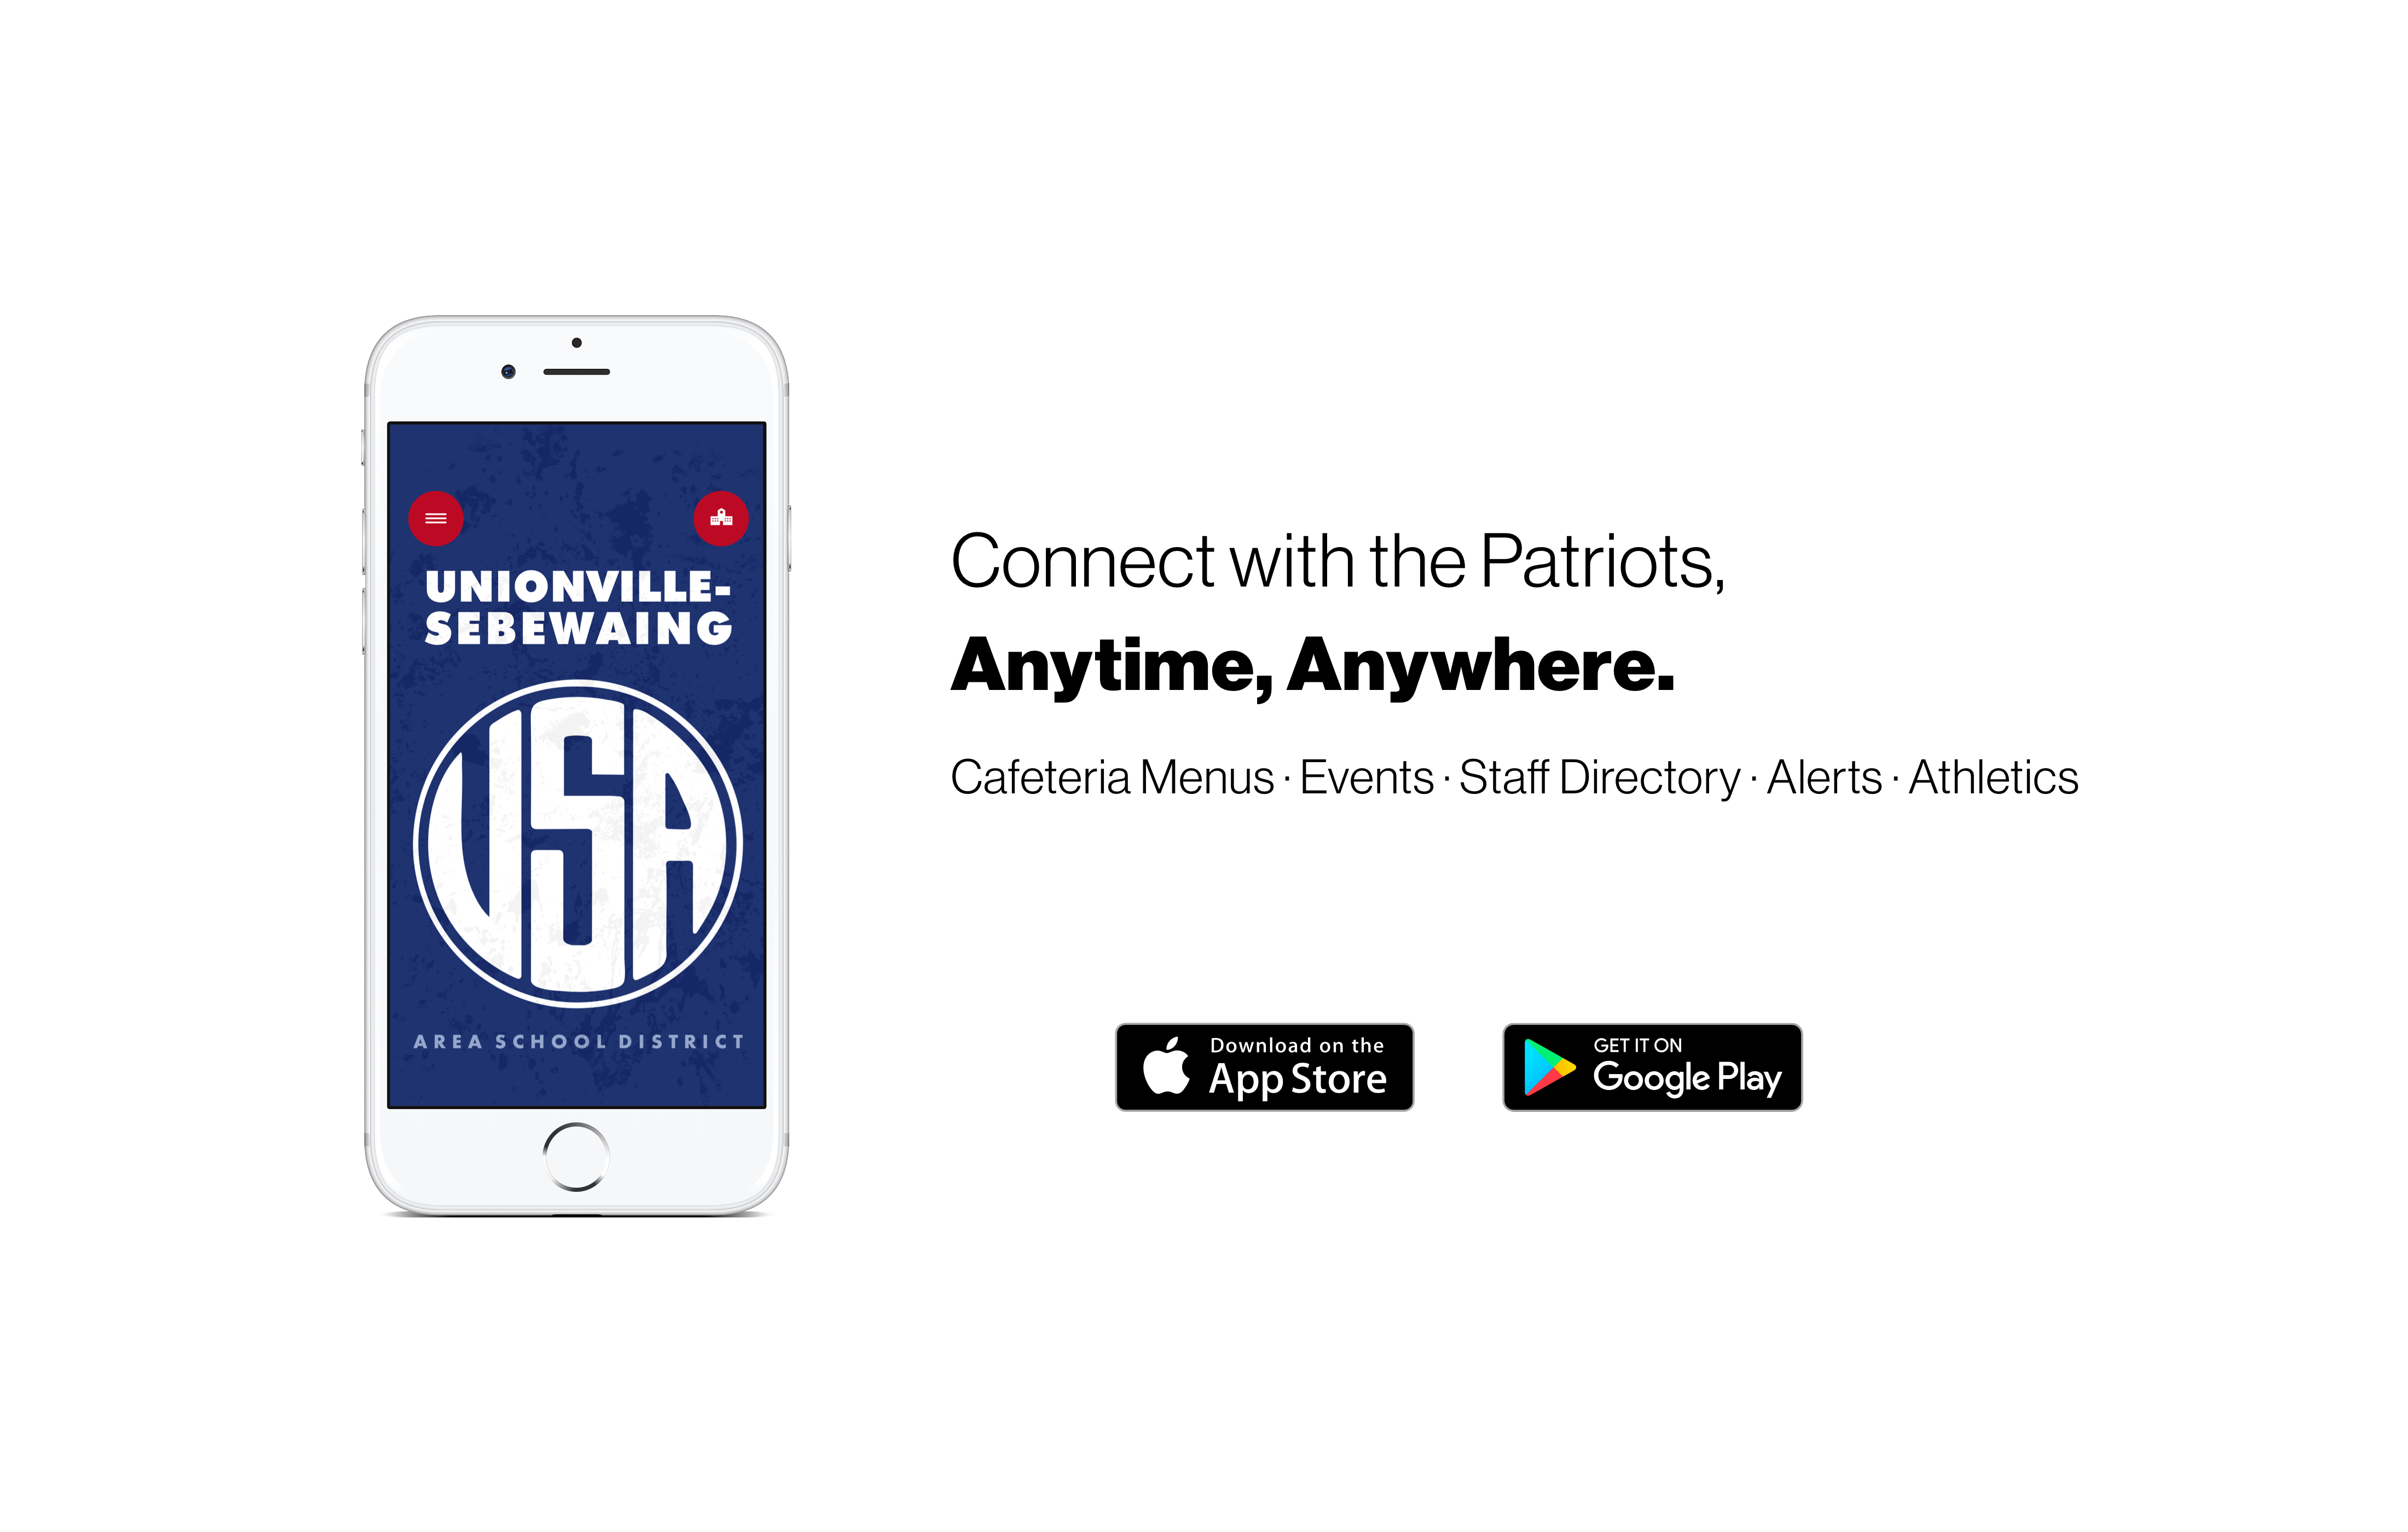 Connect with the Patriots, Anytime, Anywhere.